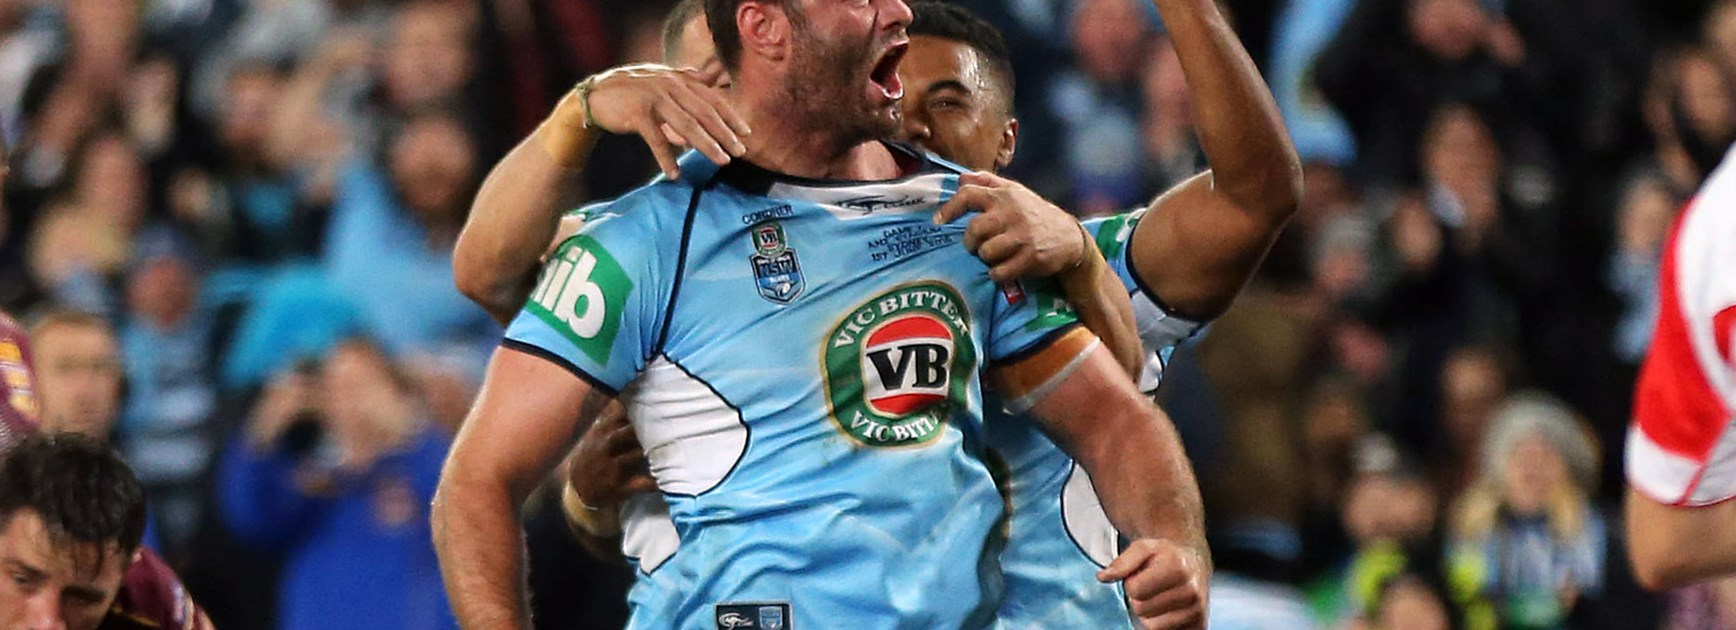 NSW players celebrate Boyd Cordner's try in Game One of the 2016 Origin series.